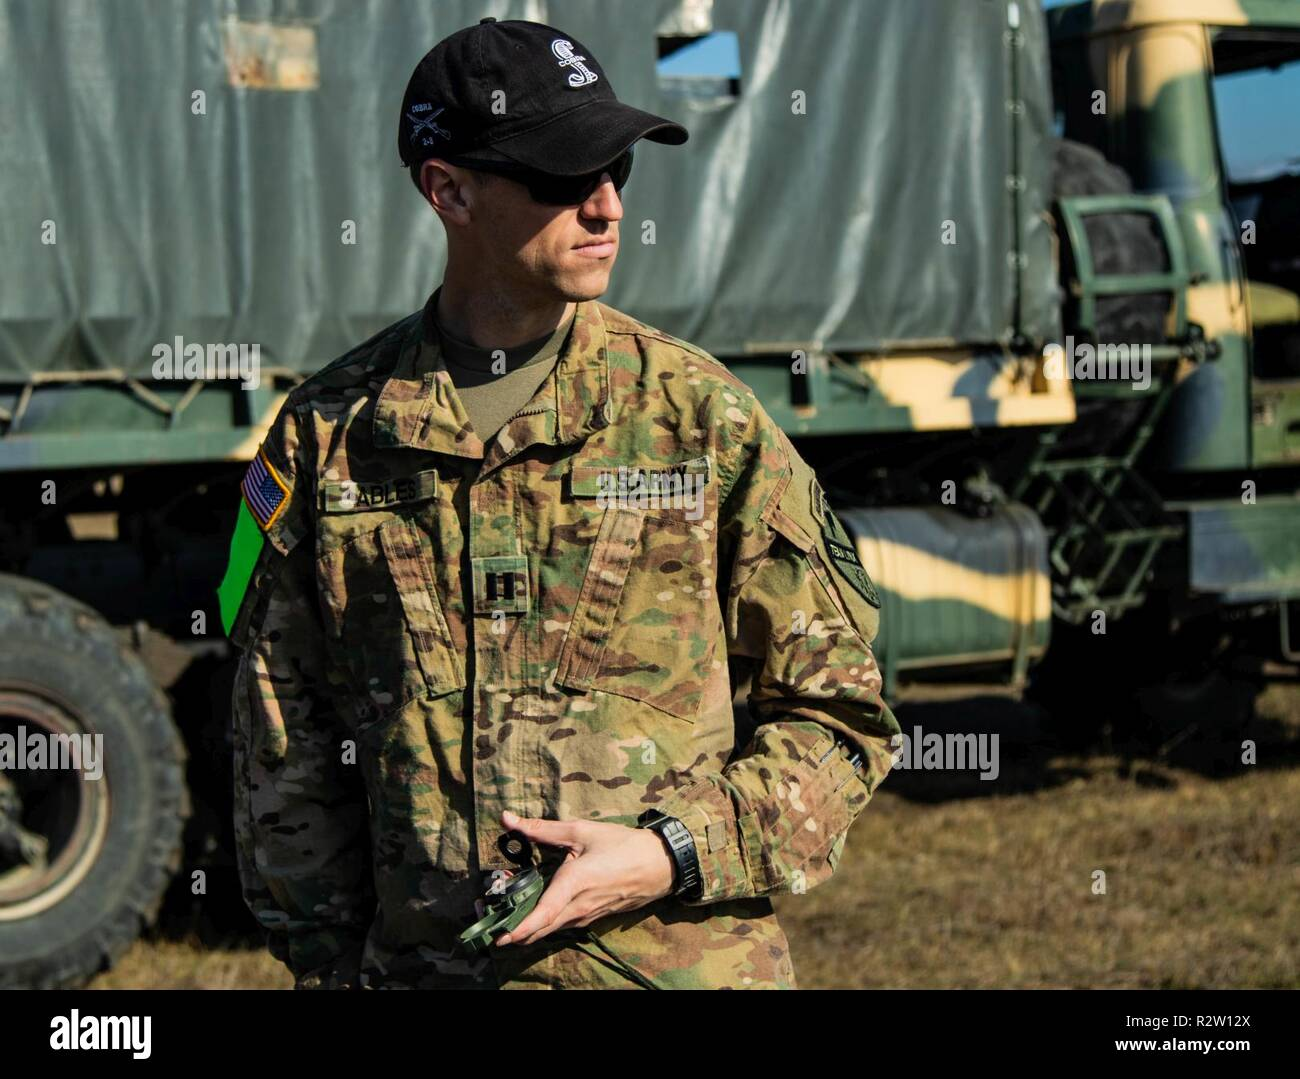 U.S. Army Capt. Micah Ables is a company commander with the 2nd Battalion, 8th Cavalry Regiment, 1st Armored Brigade Combat Team, 1st Cavalry Division, surveys terrain for an upcoming field exercise at Vaziani Training Area, Georgia on Nov. 11, 2018. 2-8 CAV assisted with the Georgia Defense Readiness Program - Training (GDRP-T) to improve interoperability with our allies and partners to increase lethality and maintain the advantage against future threats. - Stock Image